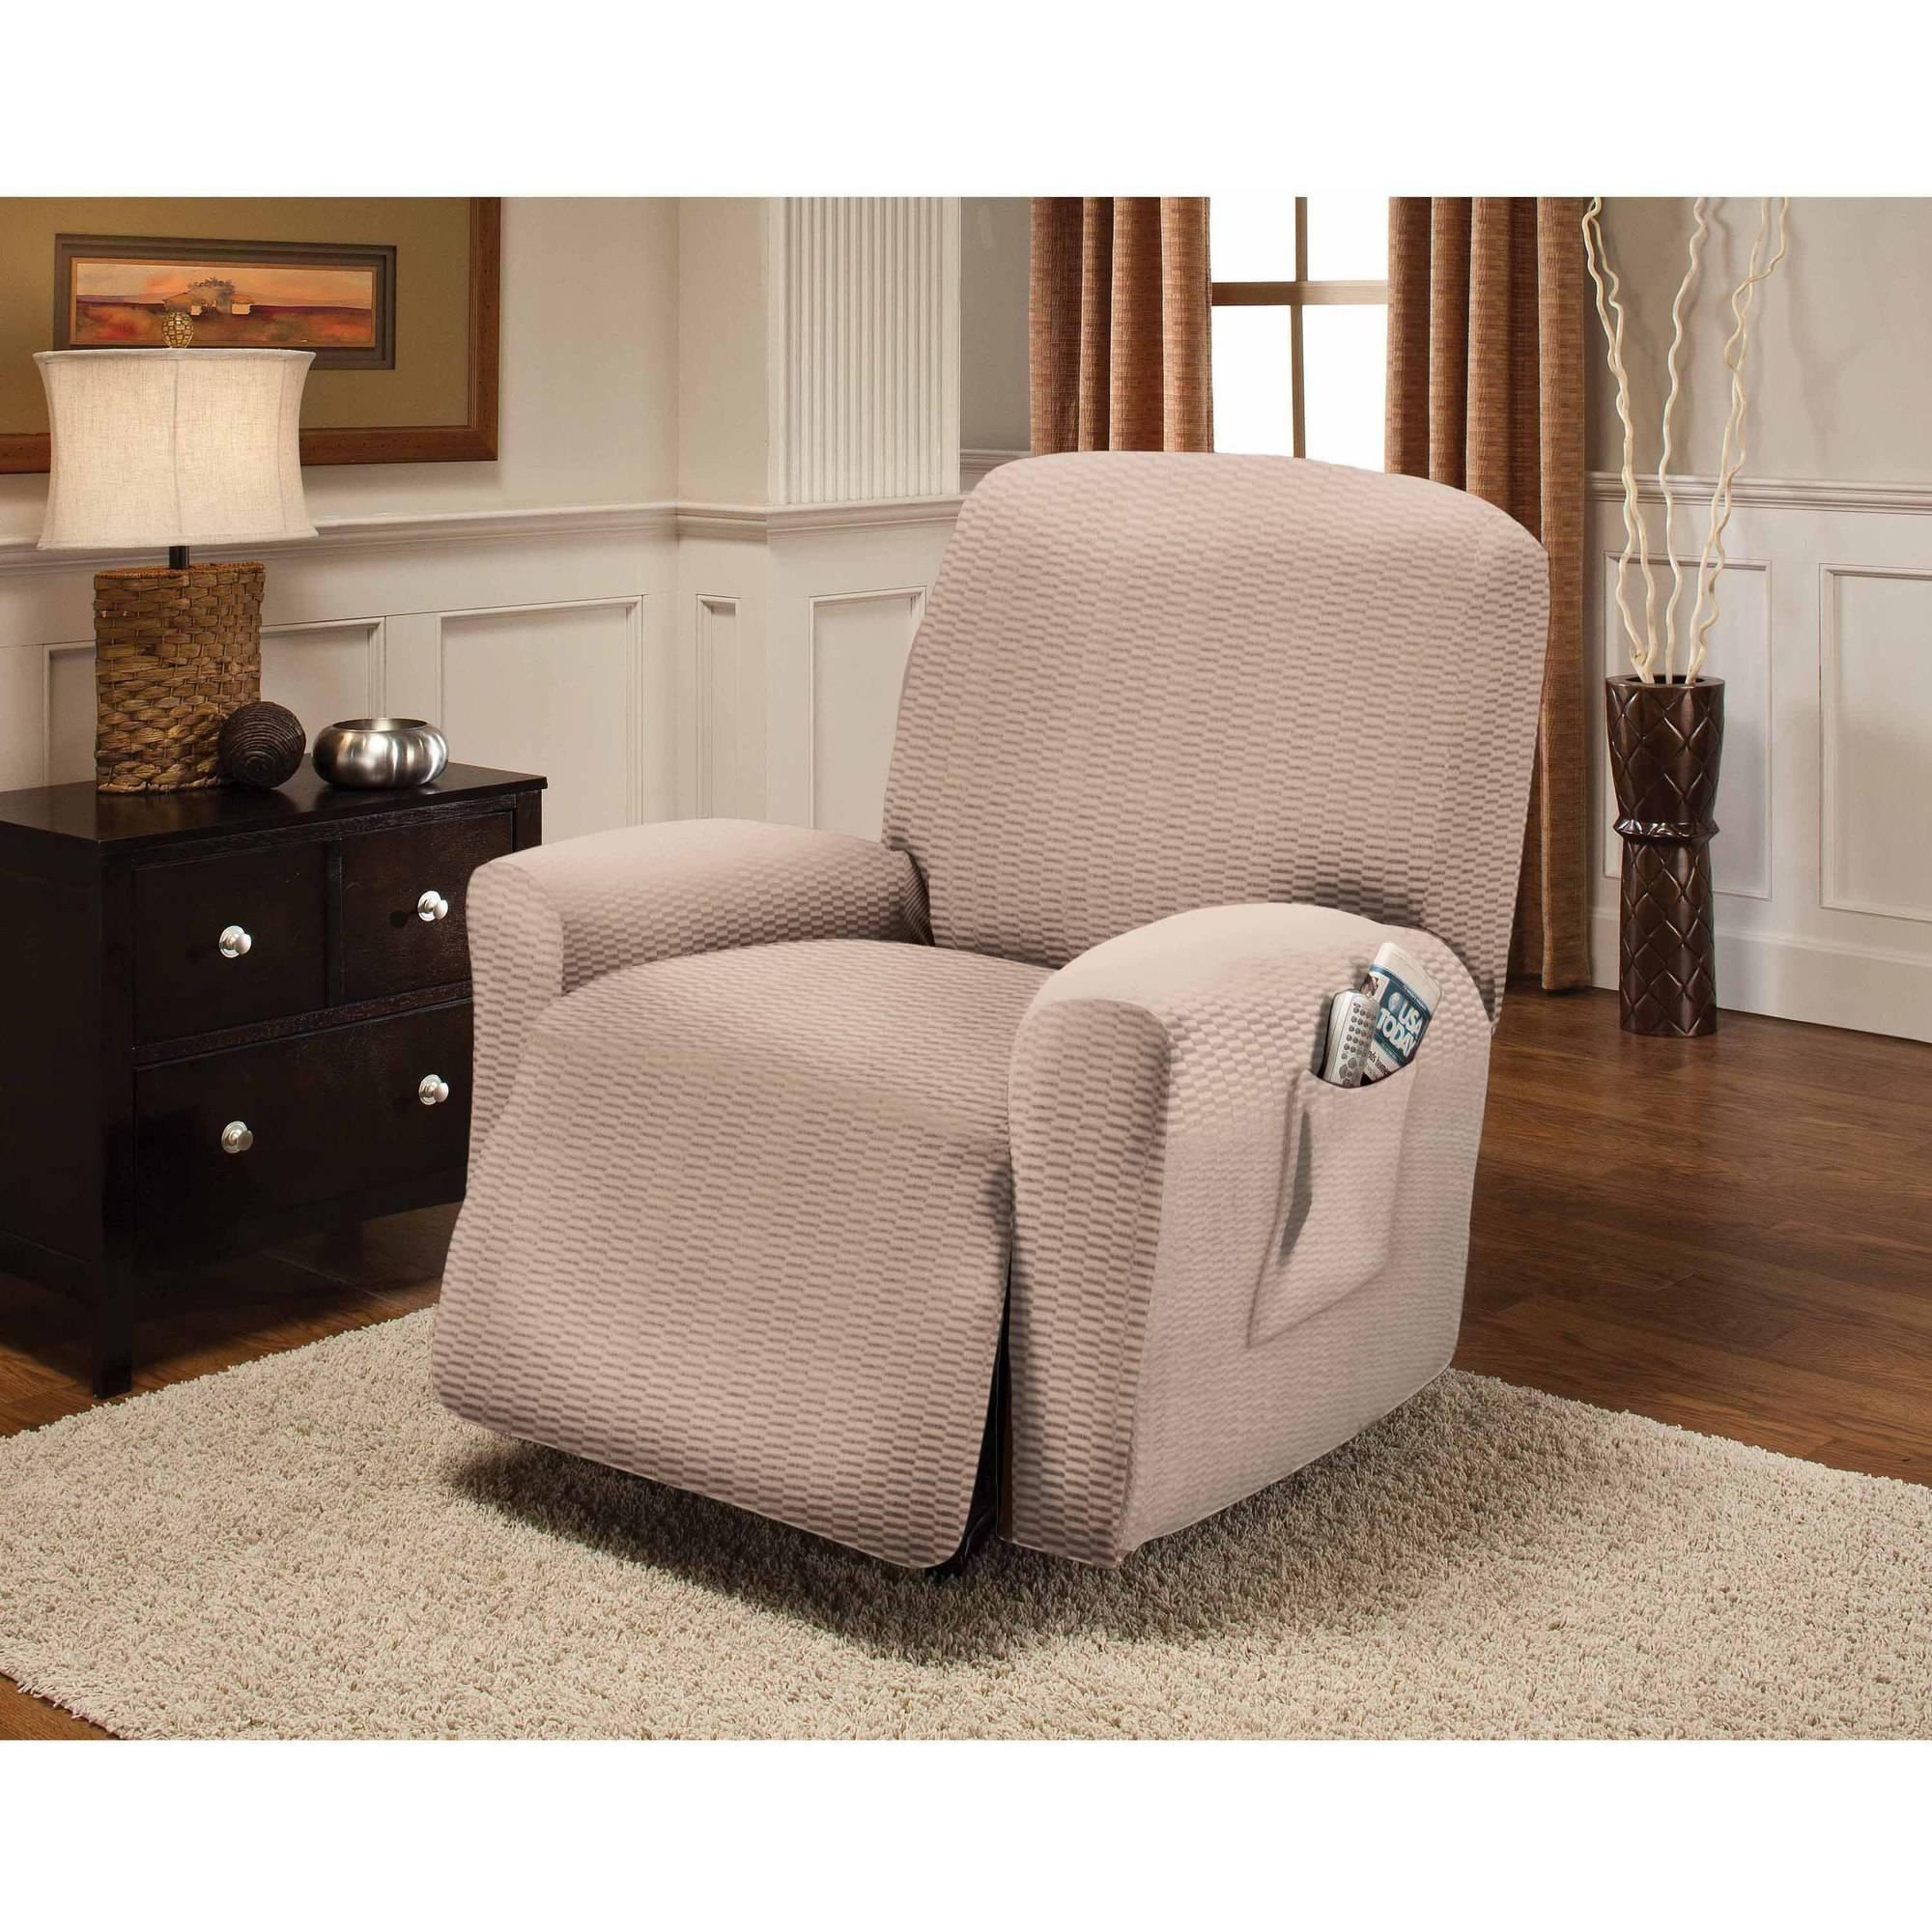 Serta Stretch Grid Slipcover, Recliner 4 Piece Box Cushion With Stretch Covers For Recliners (Image 16 of 20)